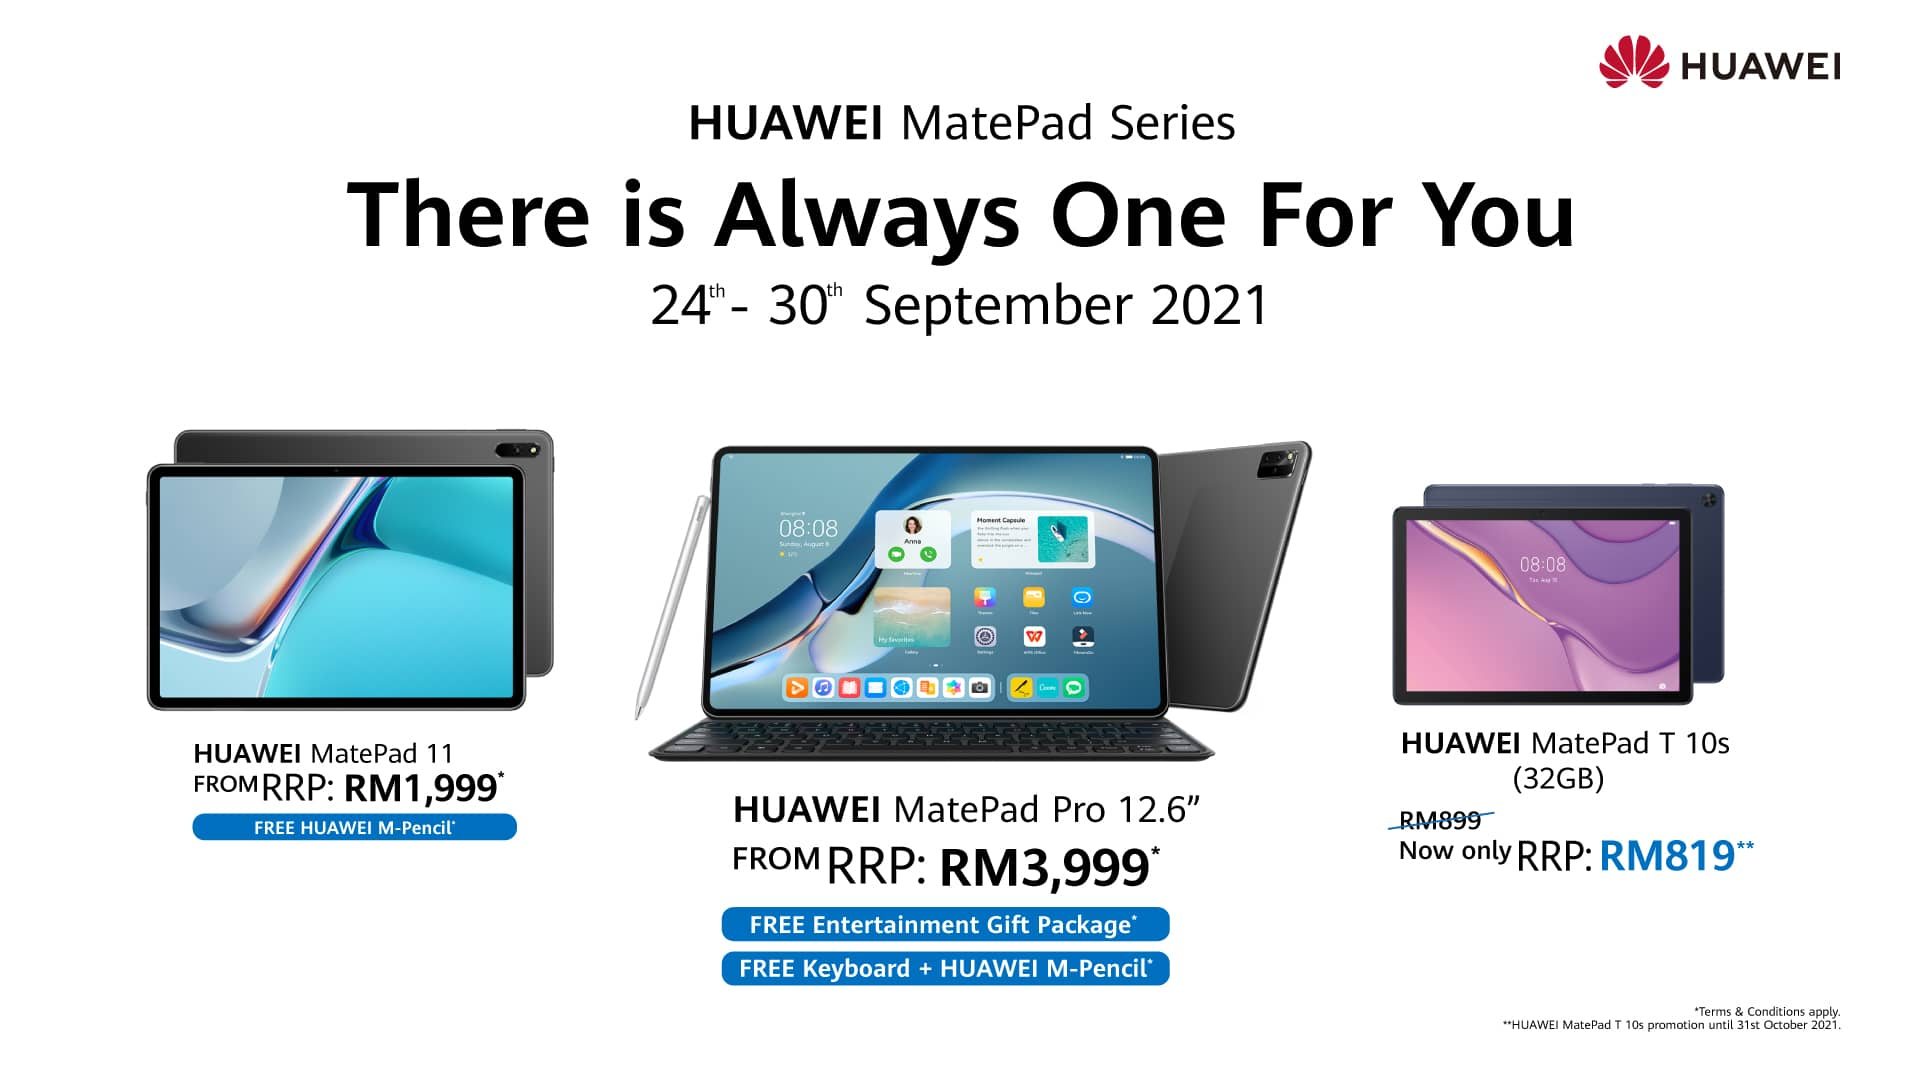 Get Free Gifts With Every Purchase of HUAWEI MatePad Series Starting From 24 September 2021